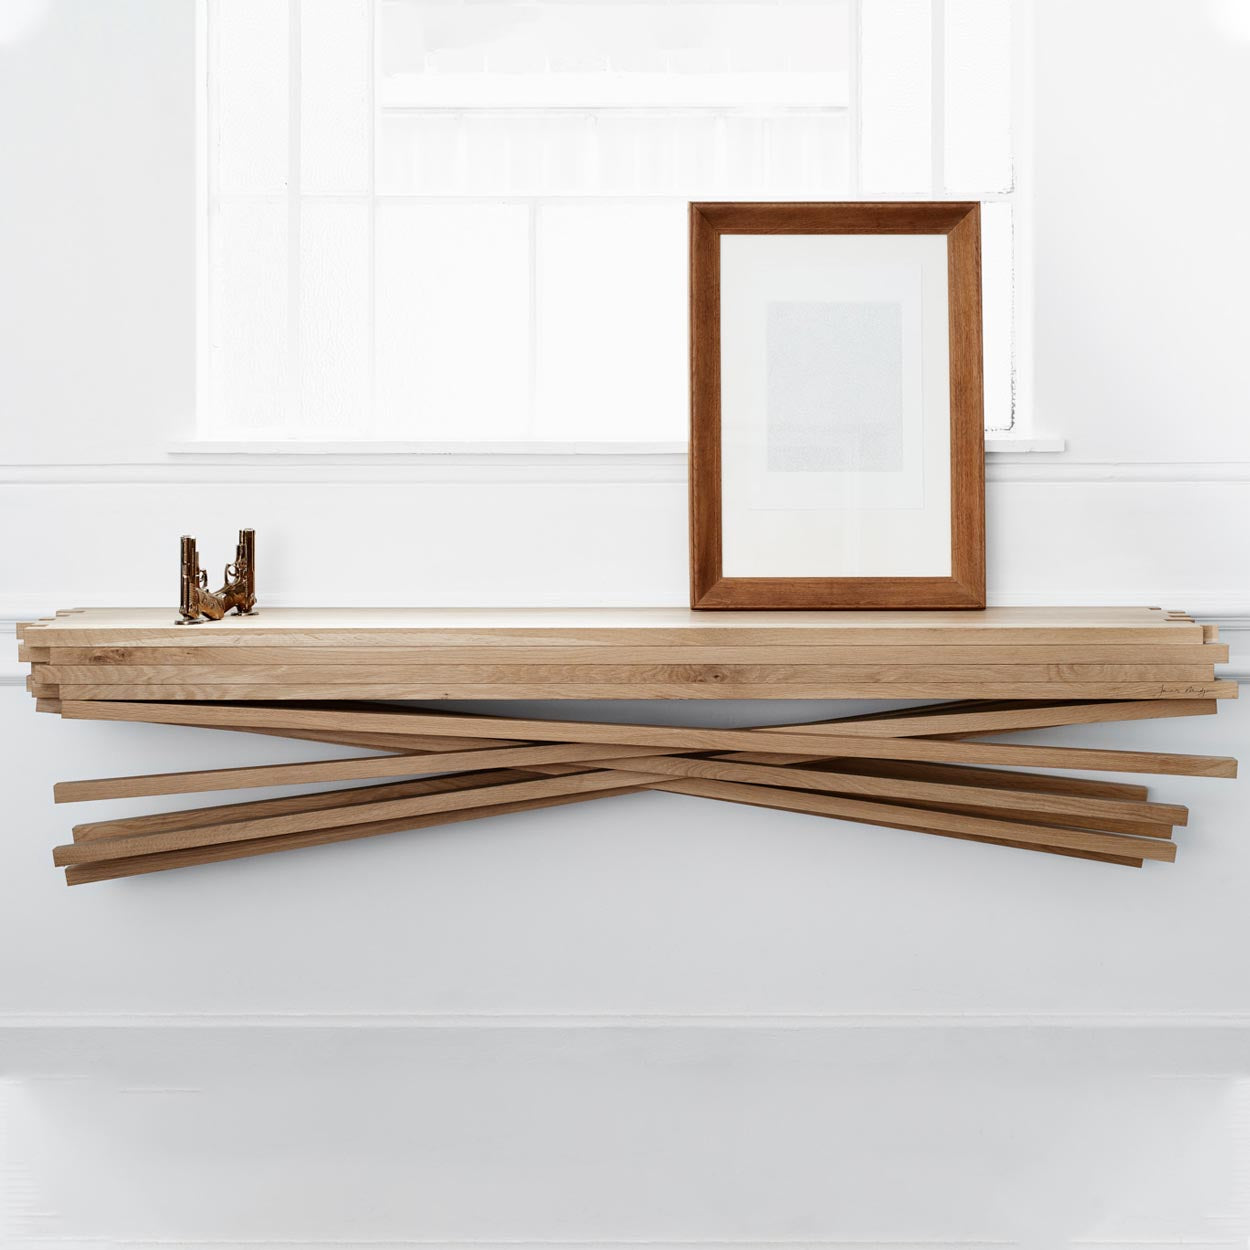 PICK UP STICKS SERVER BY JAMES MUDGE. Winner of the Elle Décor Designer of the Year Award, Pick up Sticks Server from Signature Range is a visually commanding piece of furniture.